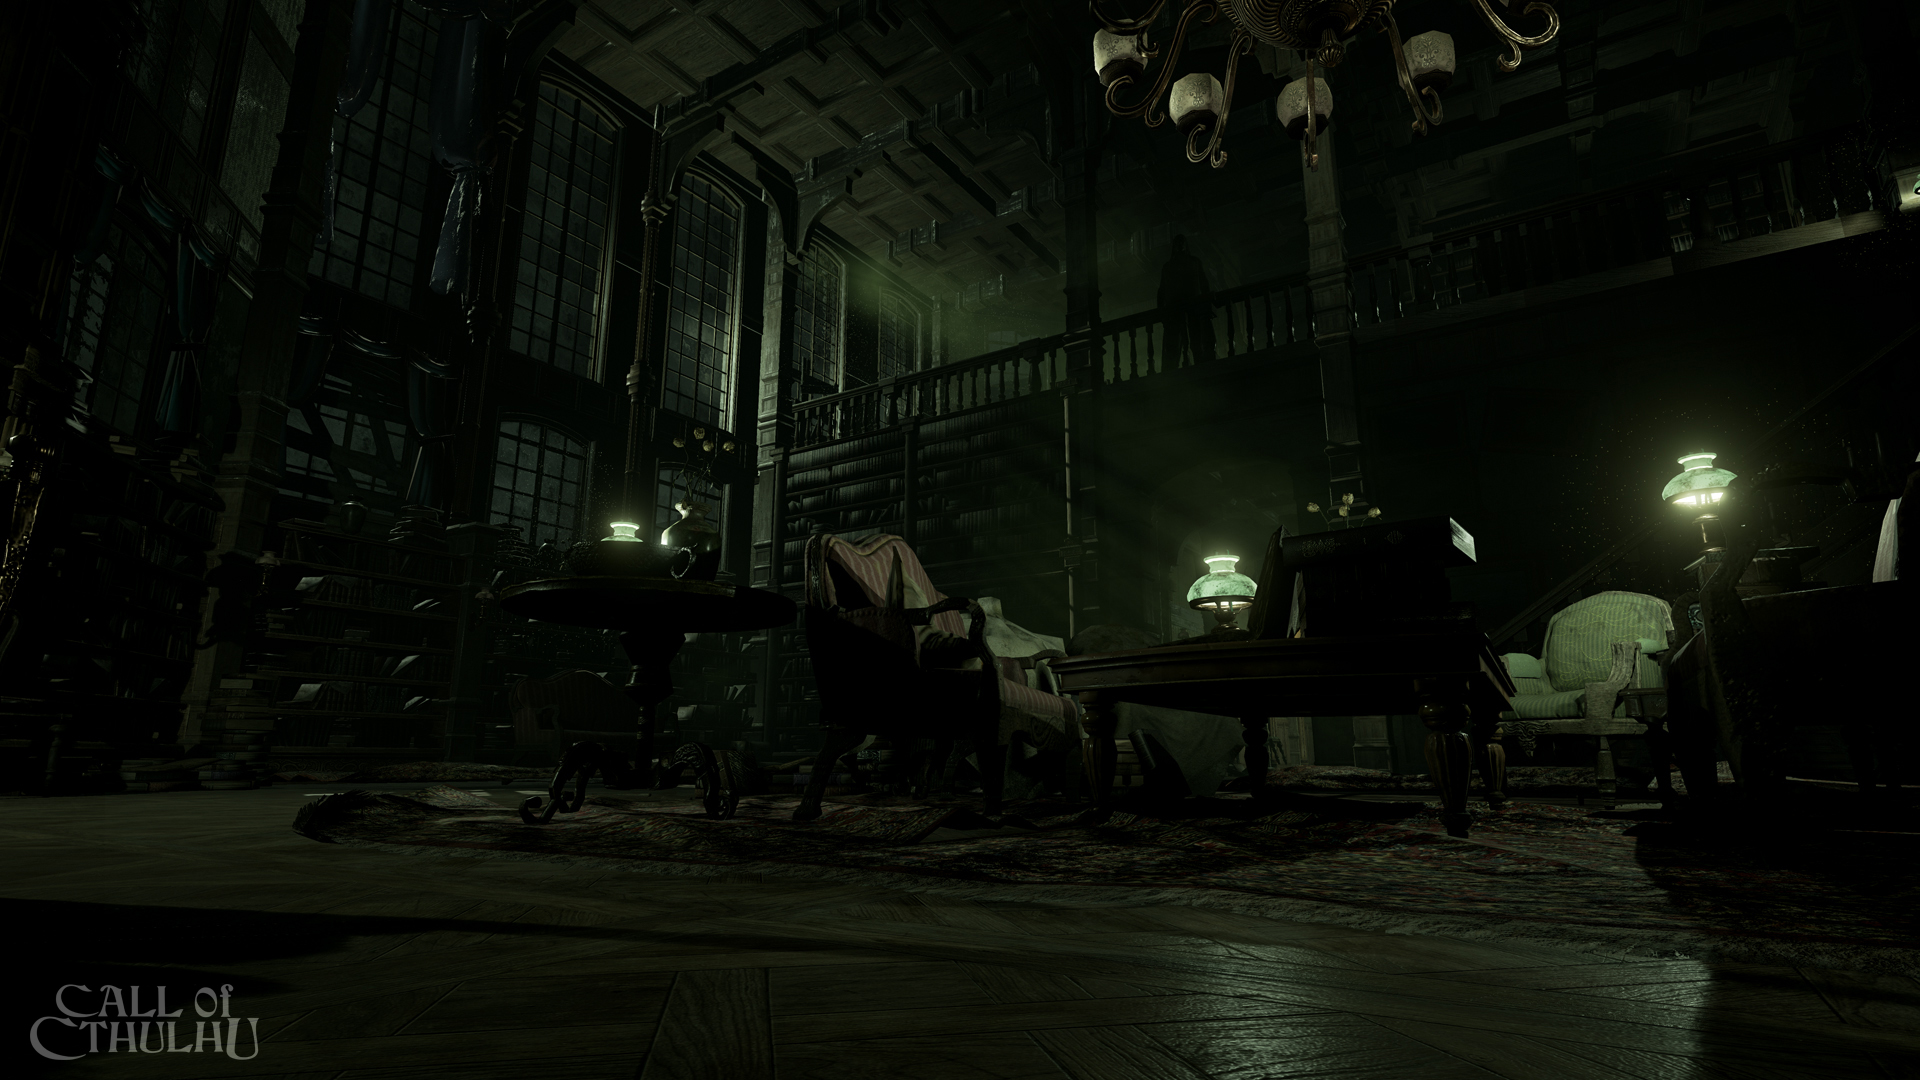 Call of Cthulhu 2018 Paris Preview